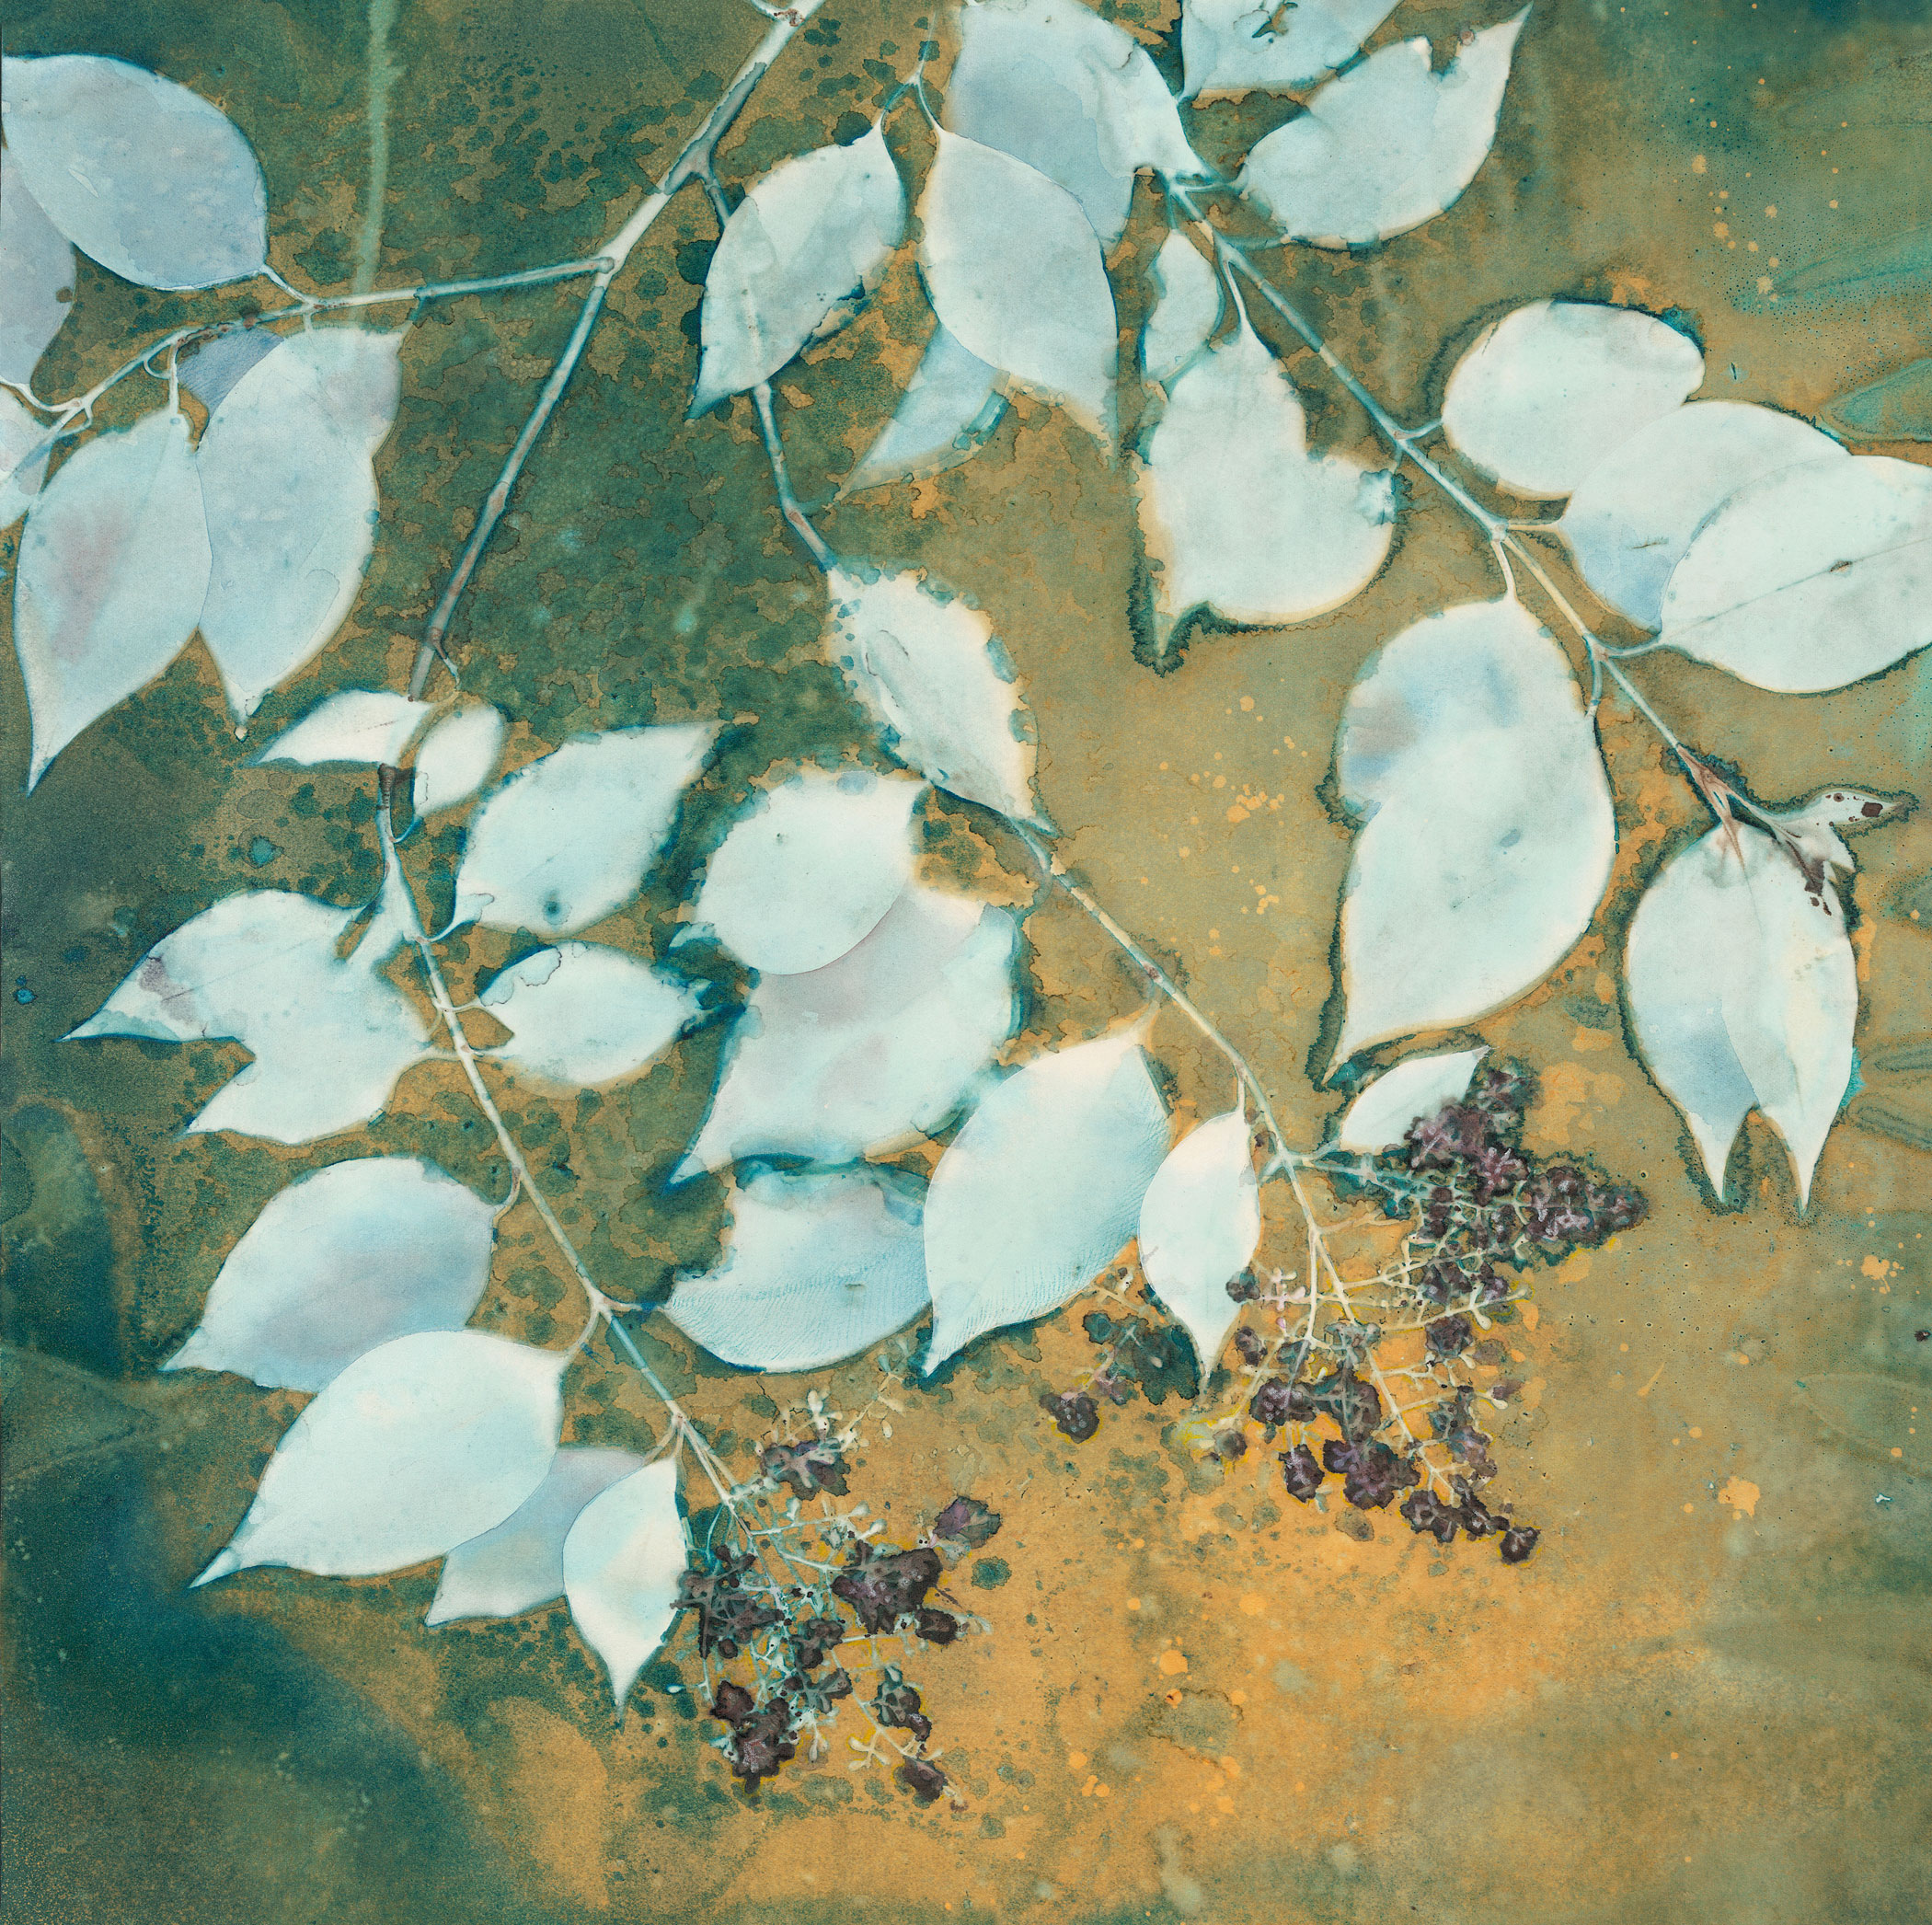 A Sky of Honey  | 20 x 20 | altered cyanotype on cradled panel | SOLD, prints available